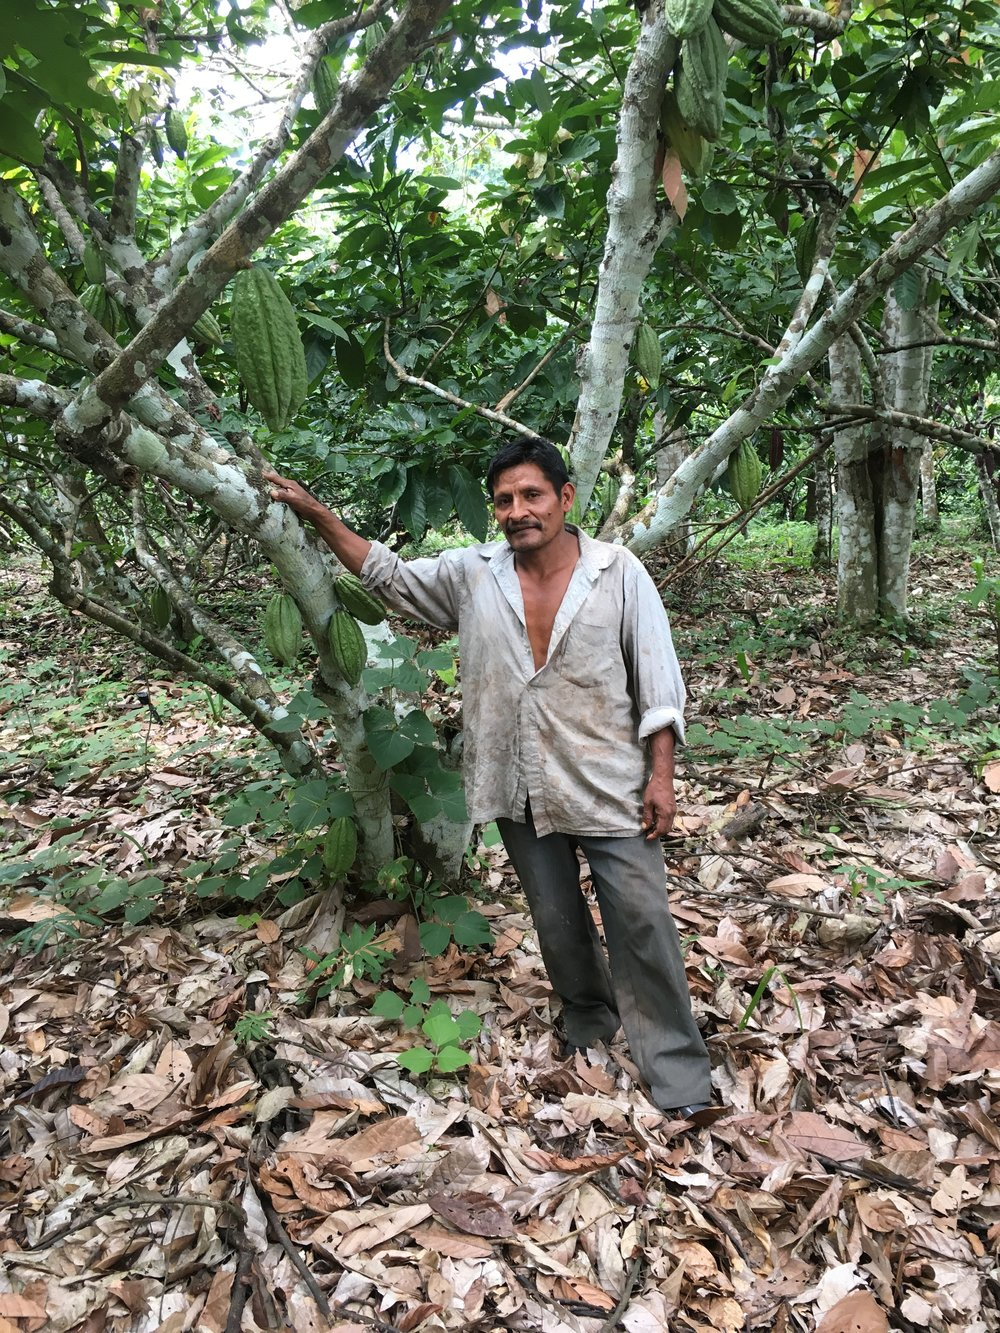 Inspecting the theobroma cacao trees